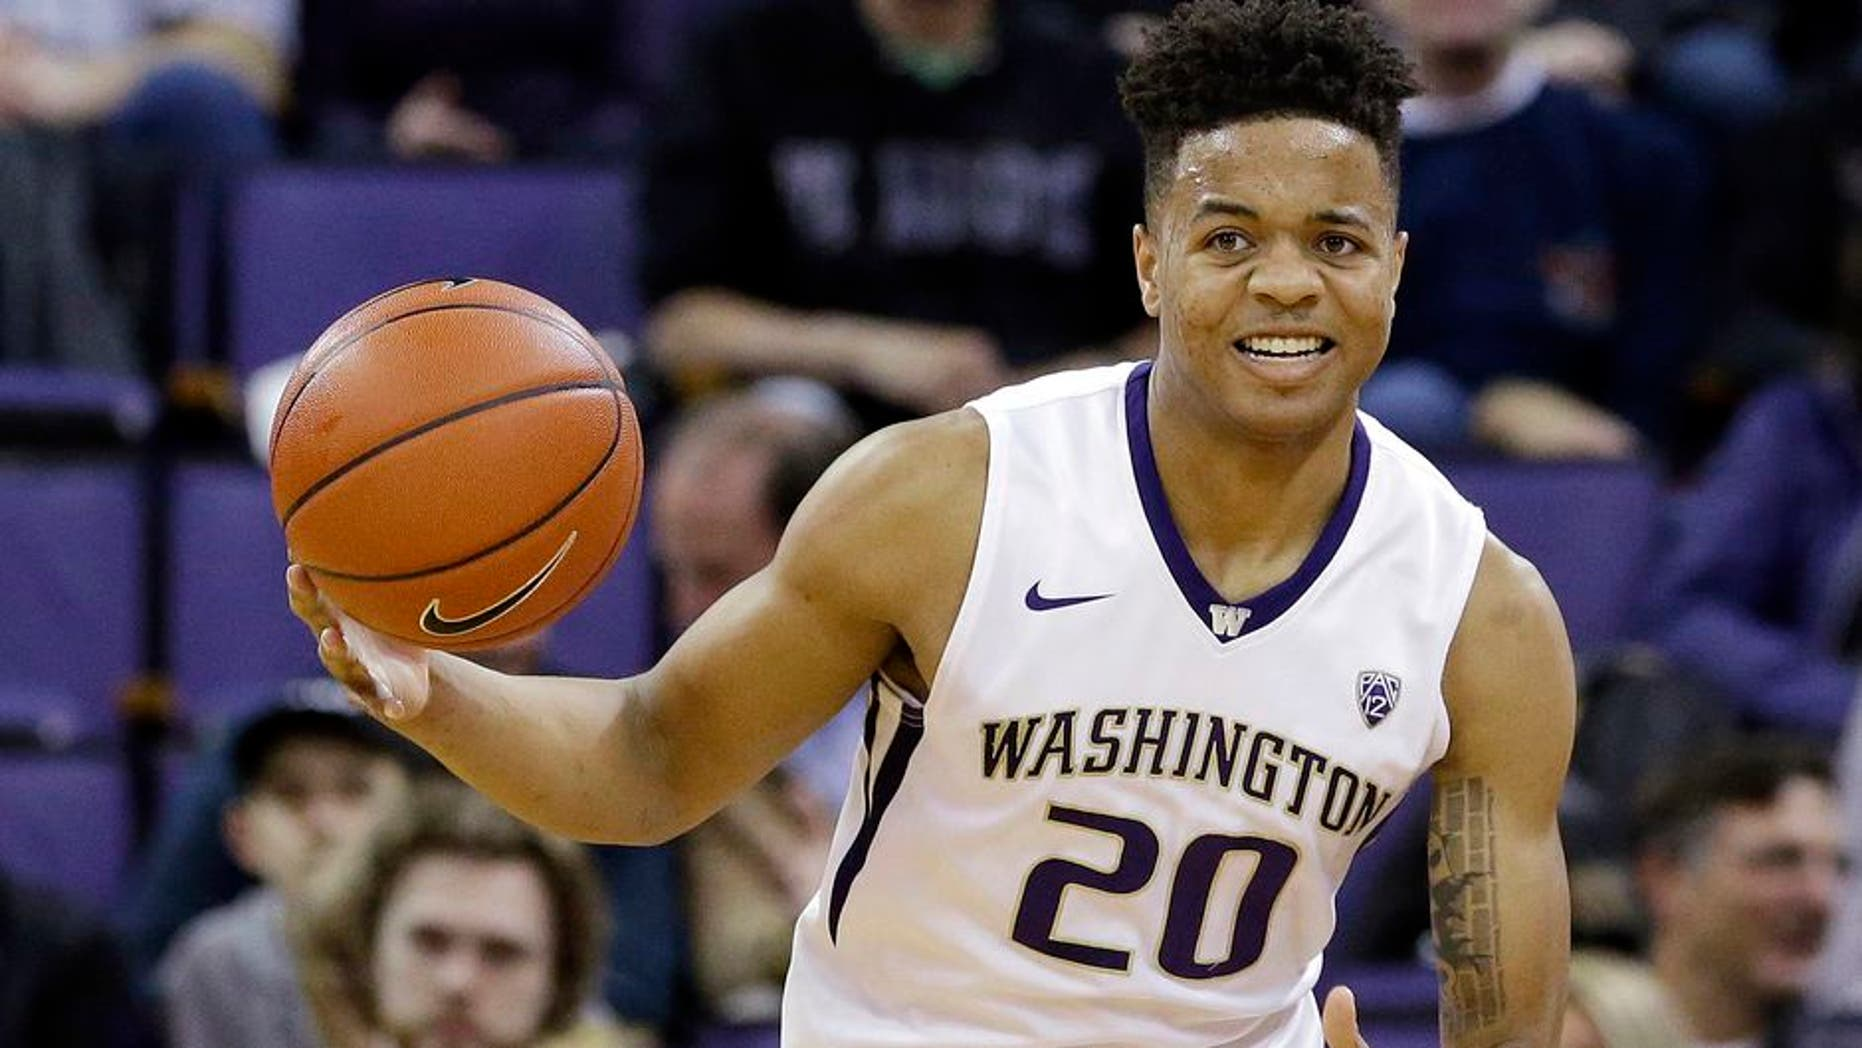 FILE - In this Feb. 18, 2017, file photo, Washington's Markelle Fultz brings the ball upcourt against Arizona during an NCAA college basketball game in Seattle. Fultz was selected to the AP All-Pac-12 Conference first team, Tuesday, March 7, 2017. (AP Photo/Elaine Thompson, File)